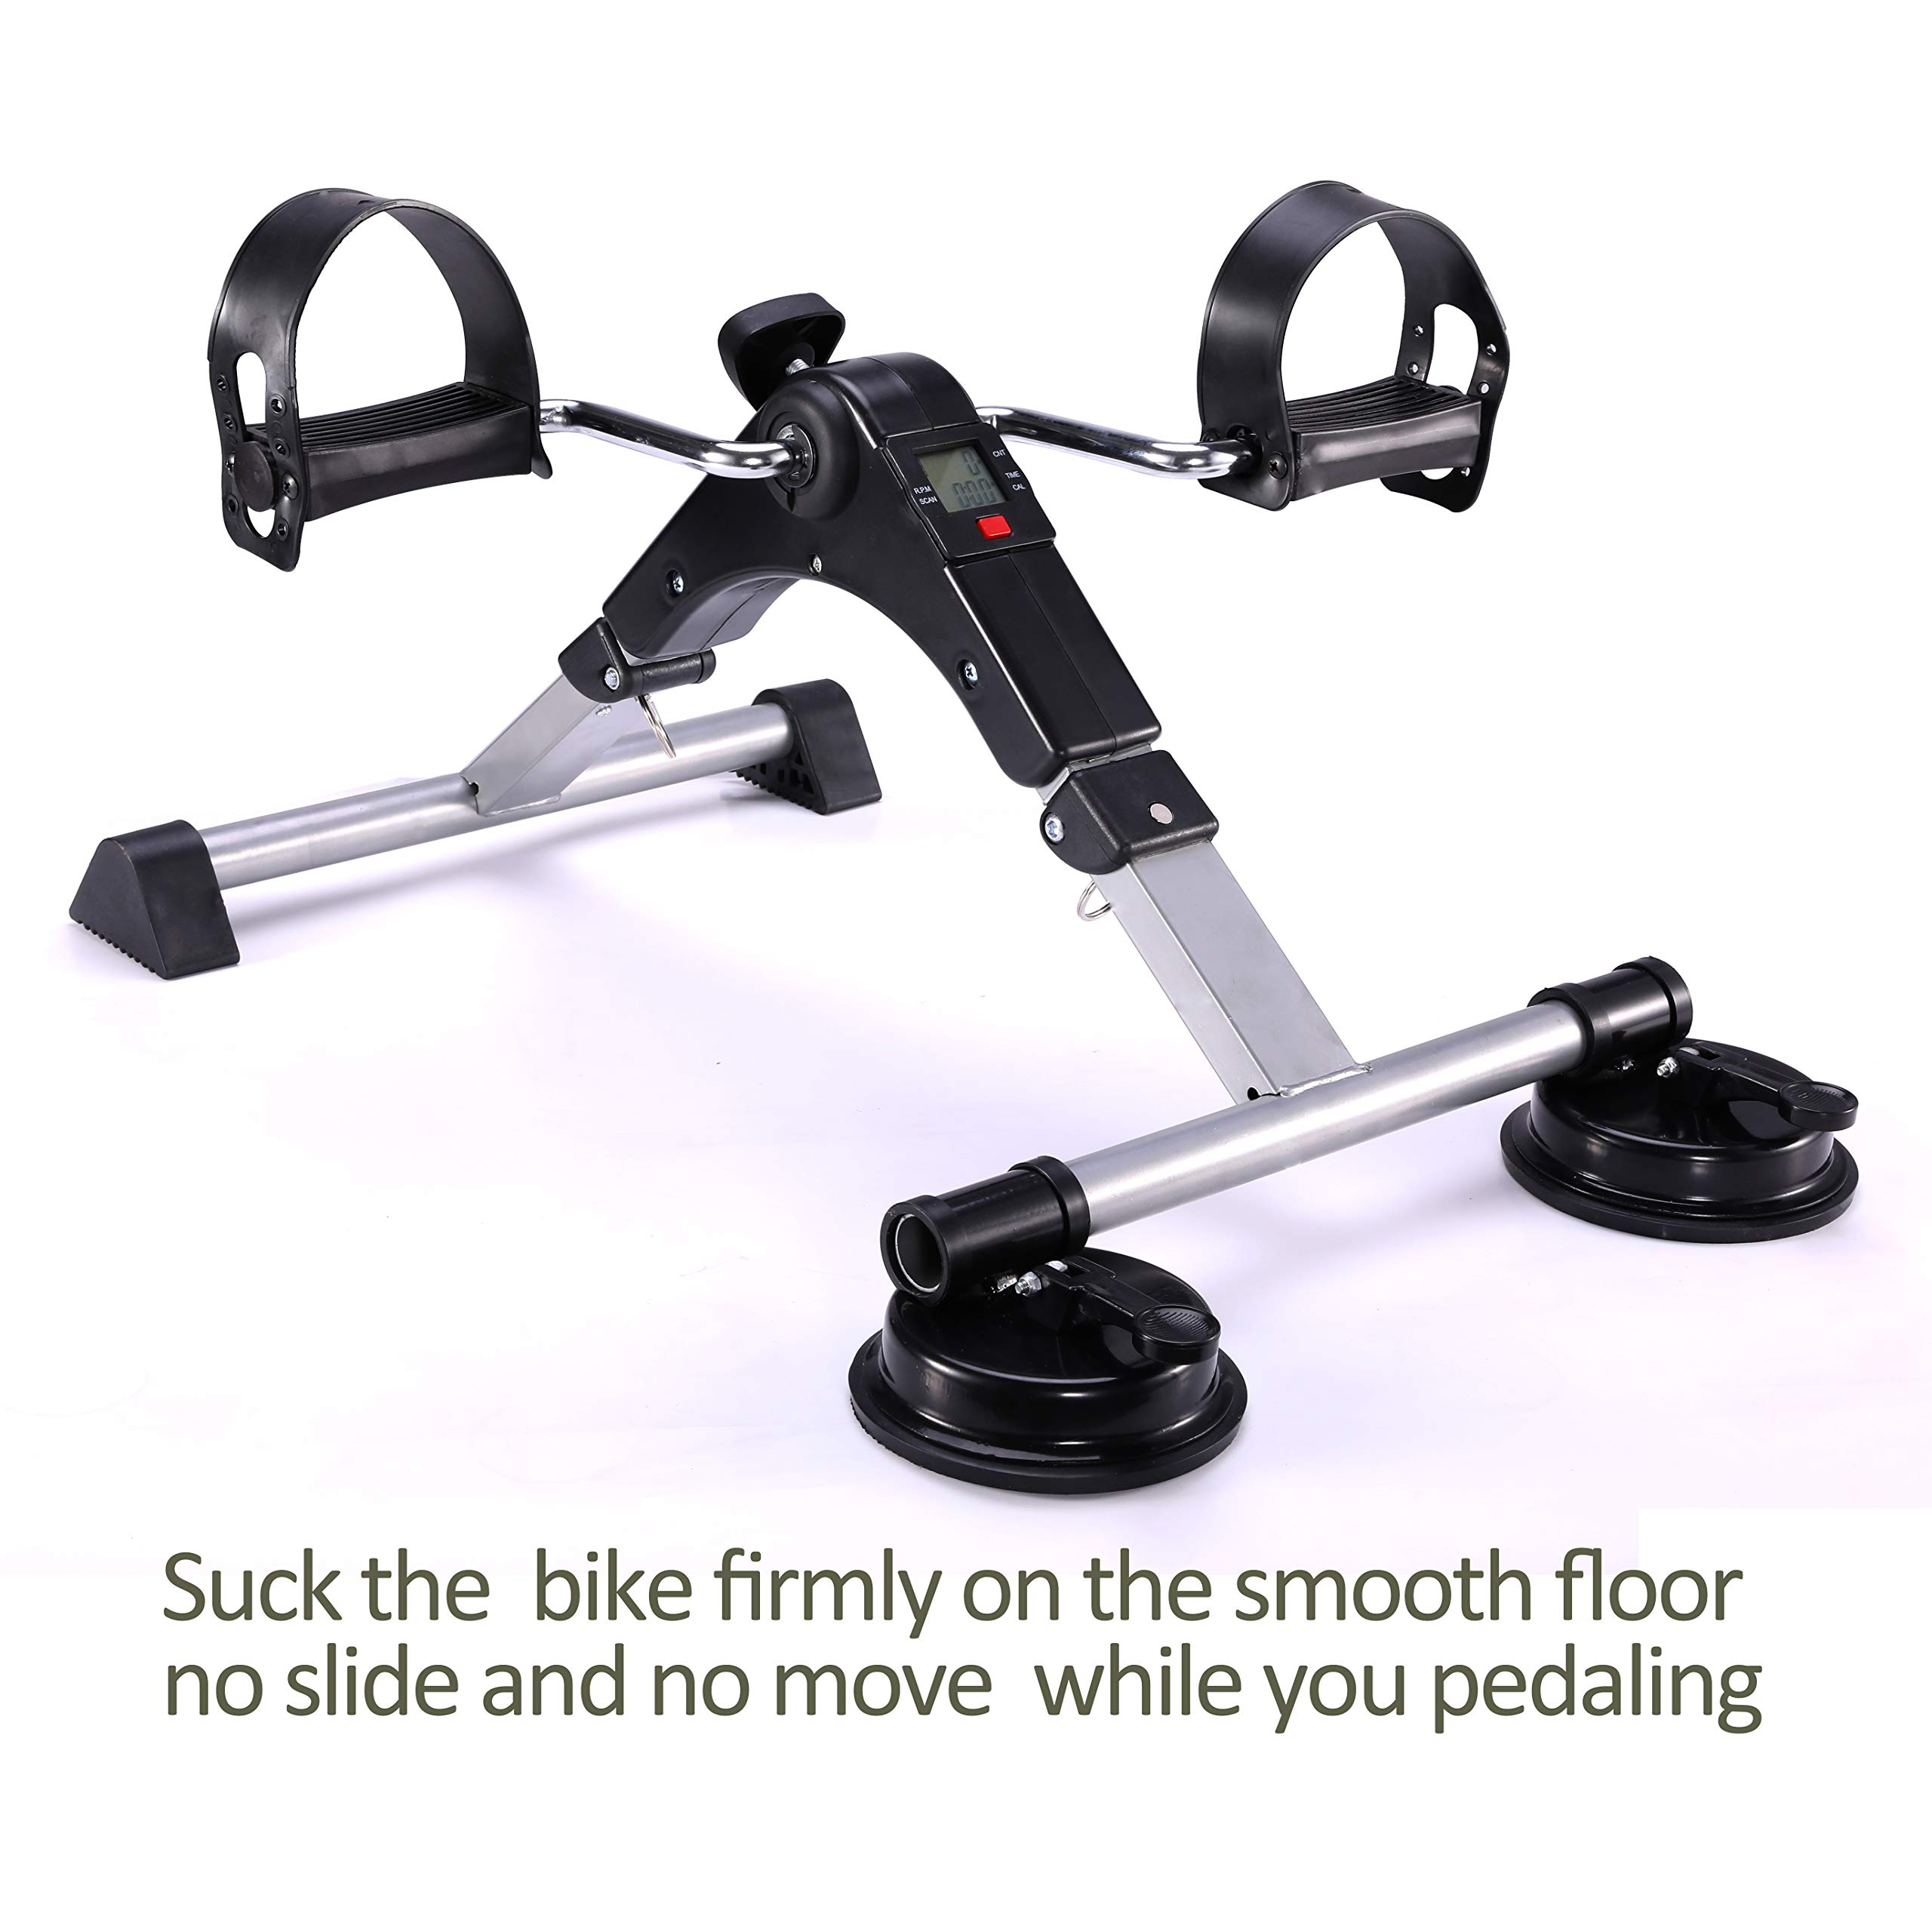 MOMODA Foot Pedal Exerciser Mini Exercise Bike with Suckers Non-Slip(Black/Gray) by MOMODA (Image #2)